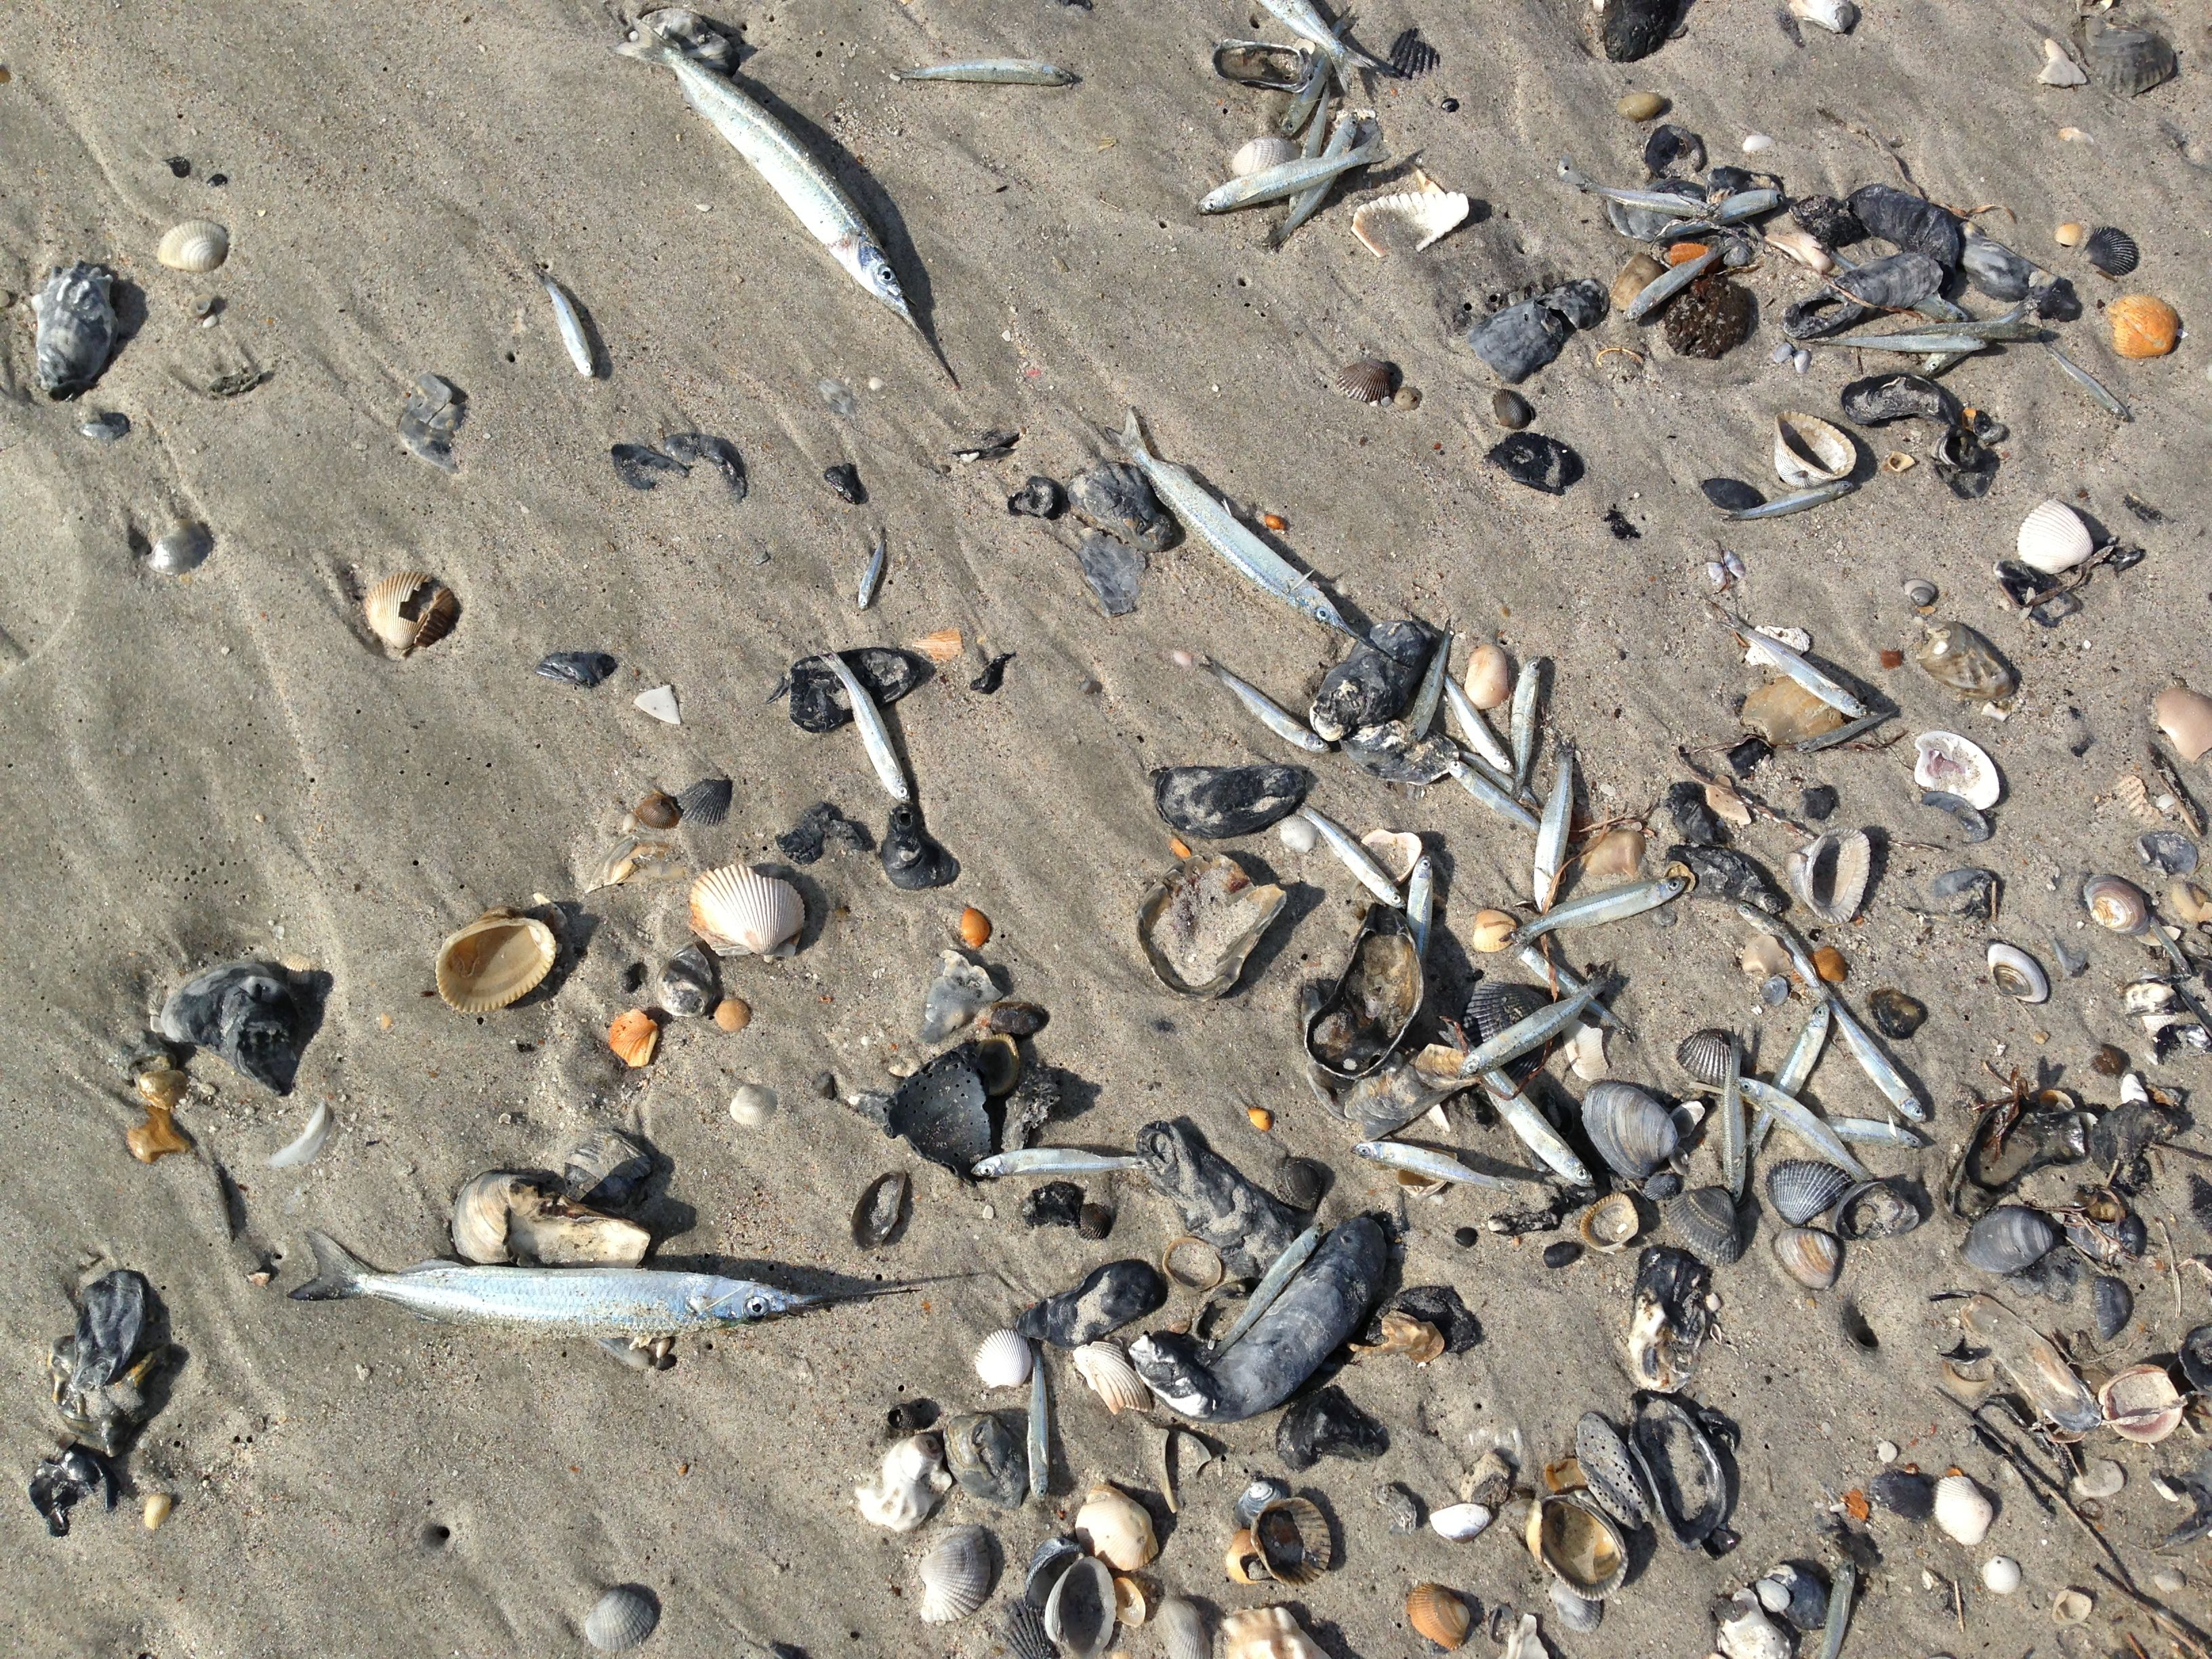 Lots of dead fish washed ashore